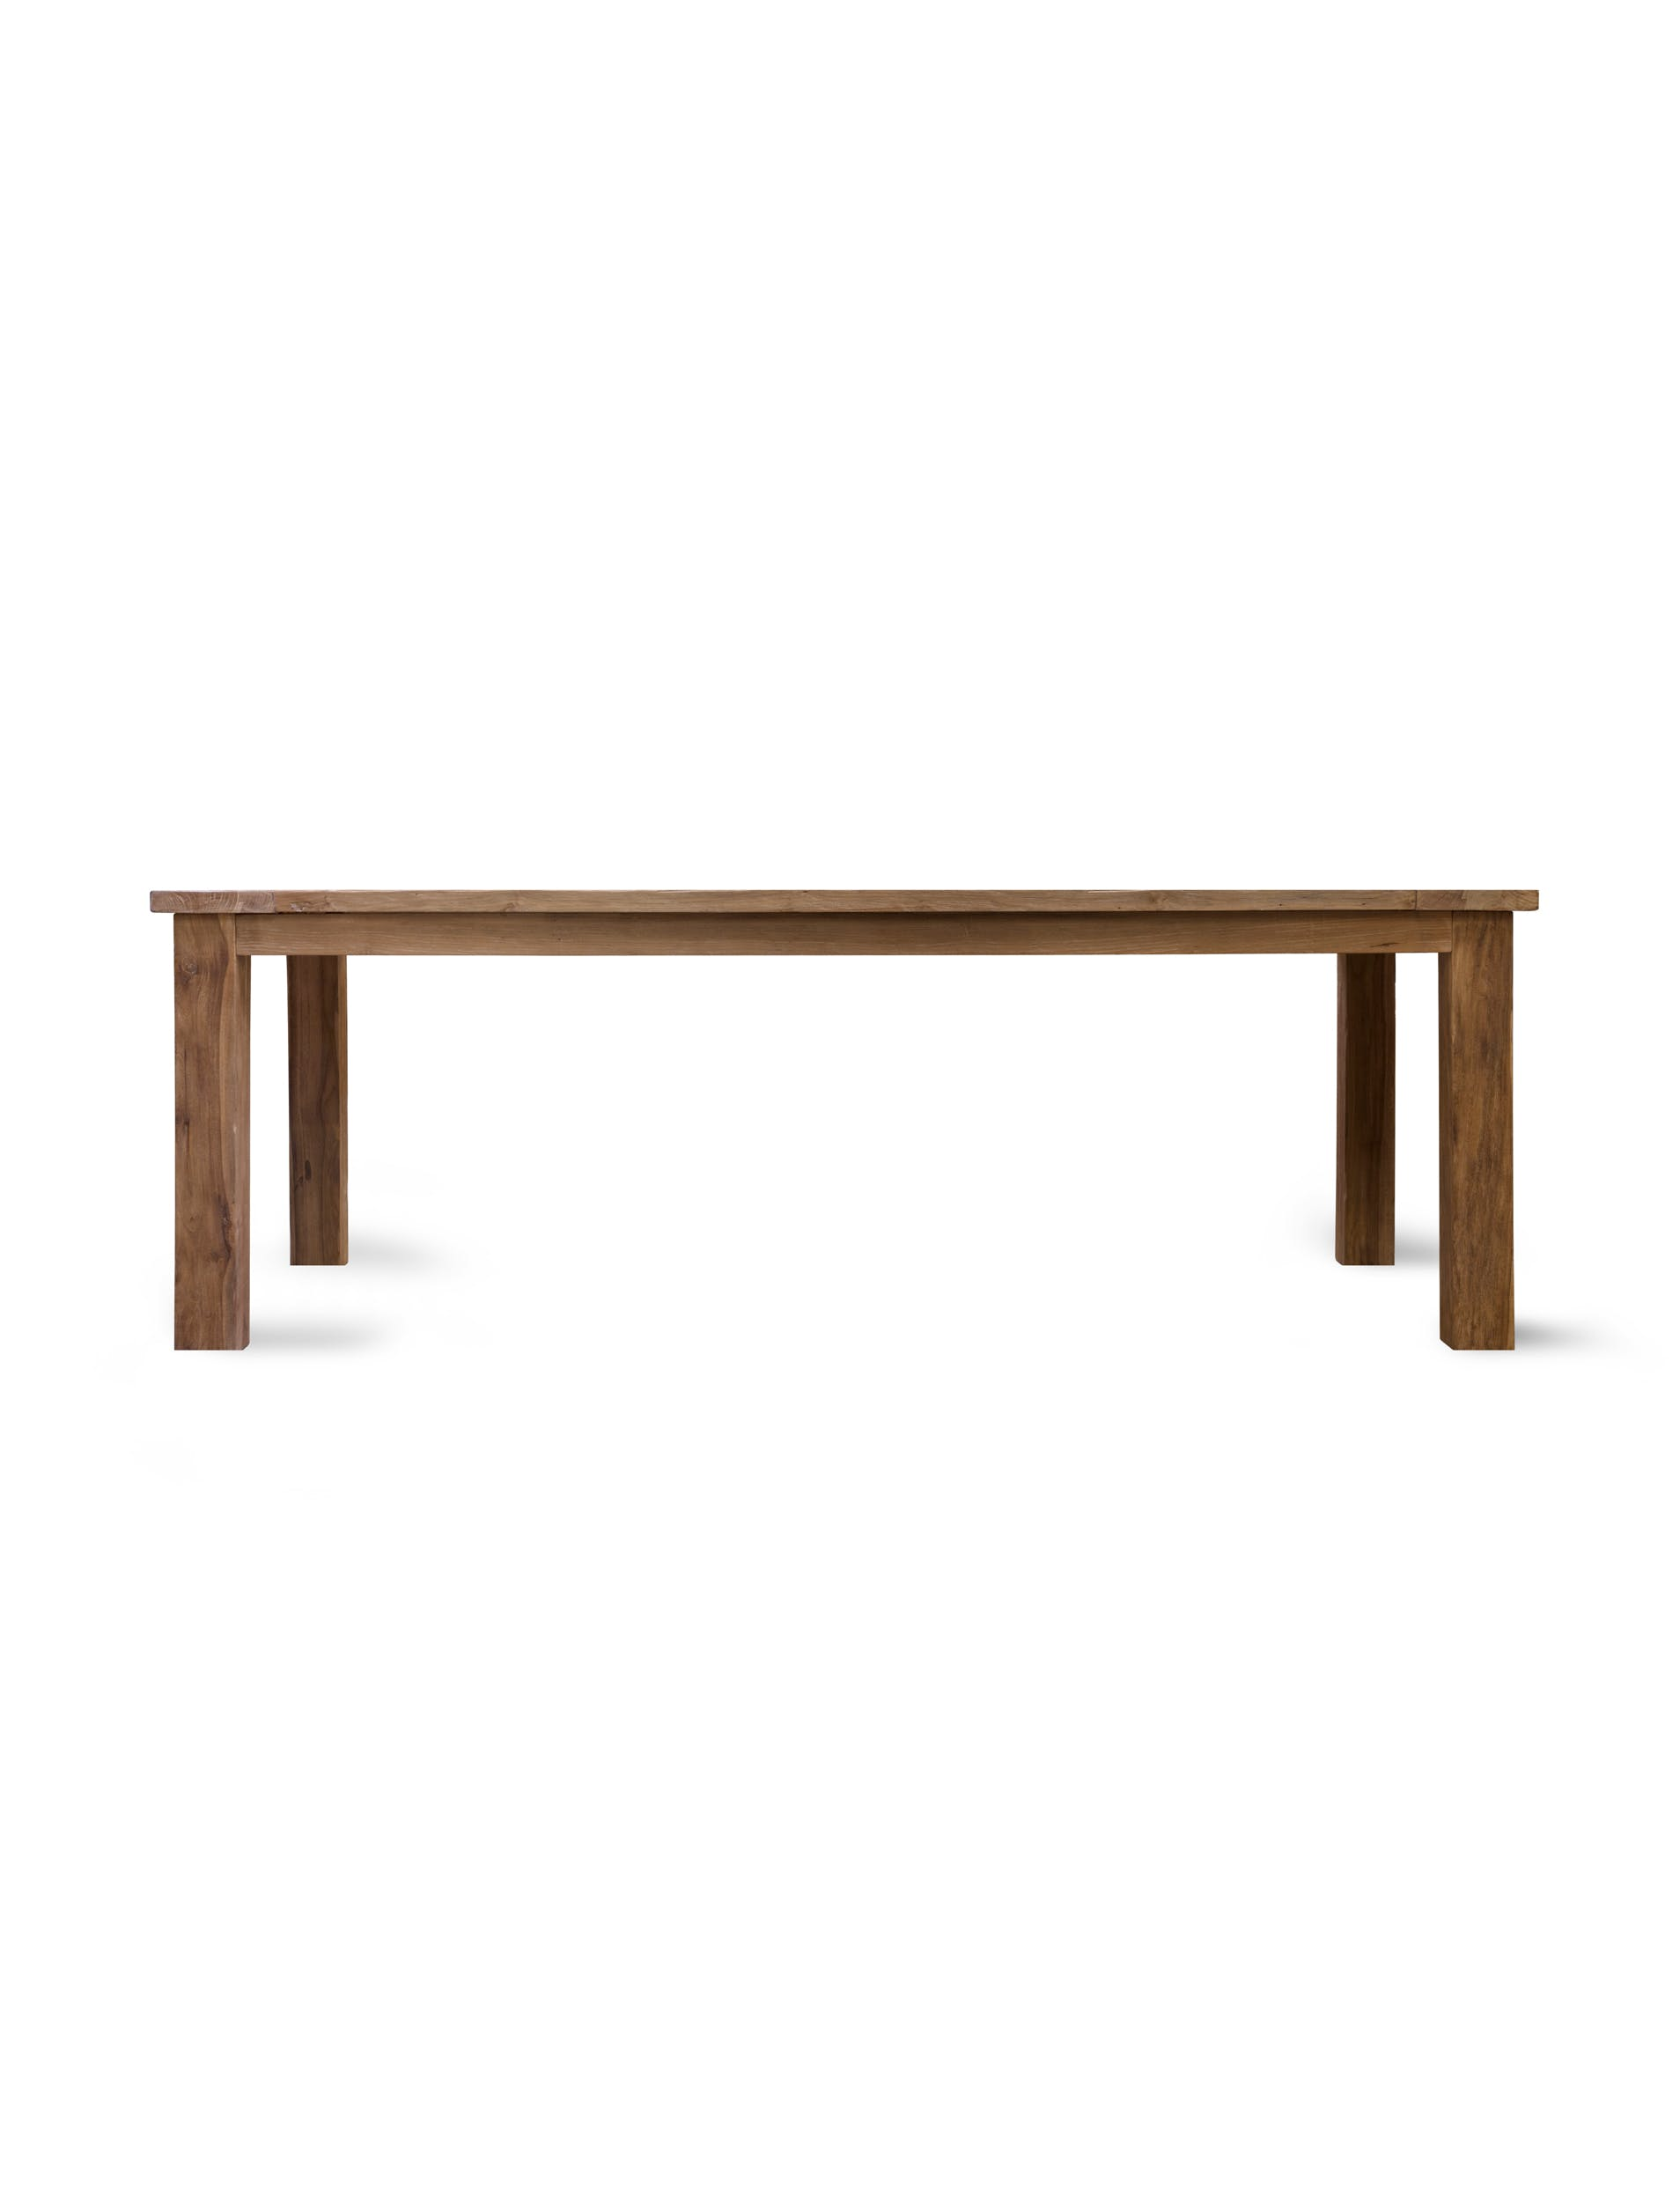 Teak St Mawes Outdoor Refectory Table, 10 Seater | Garden Trading